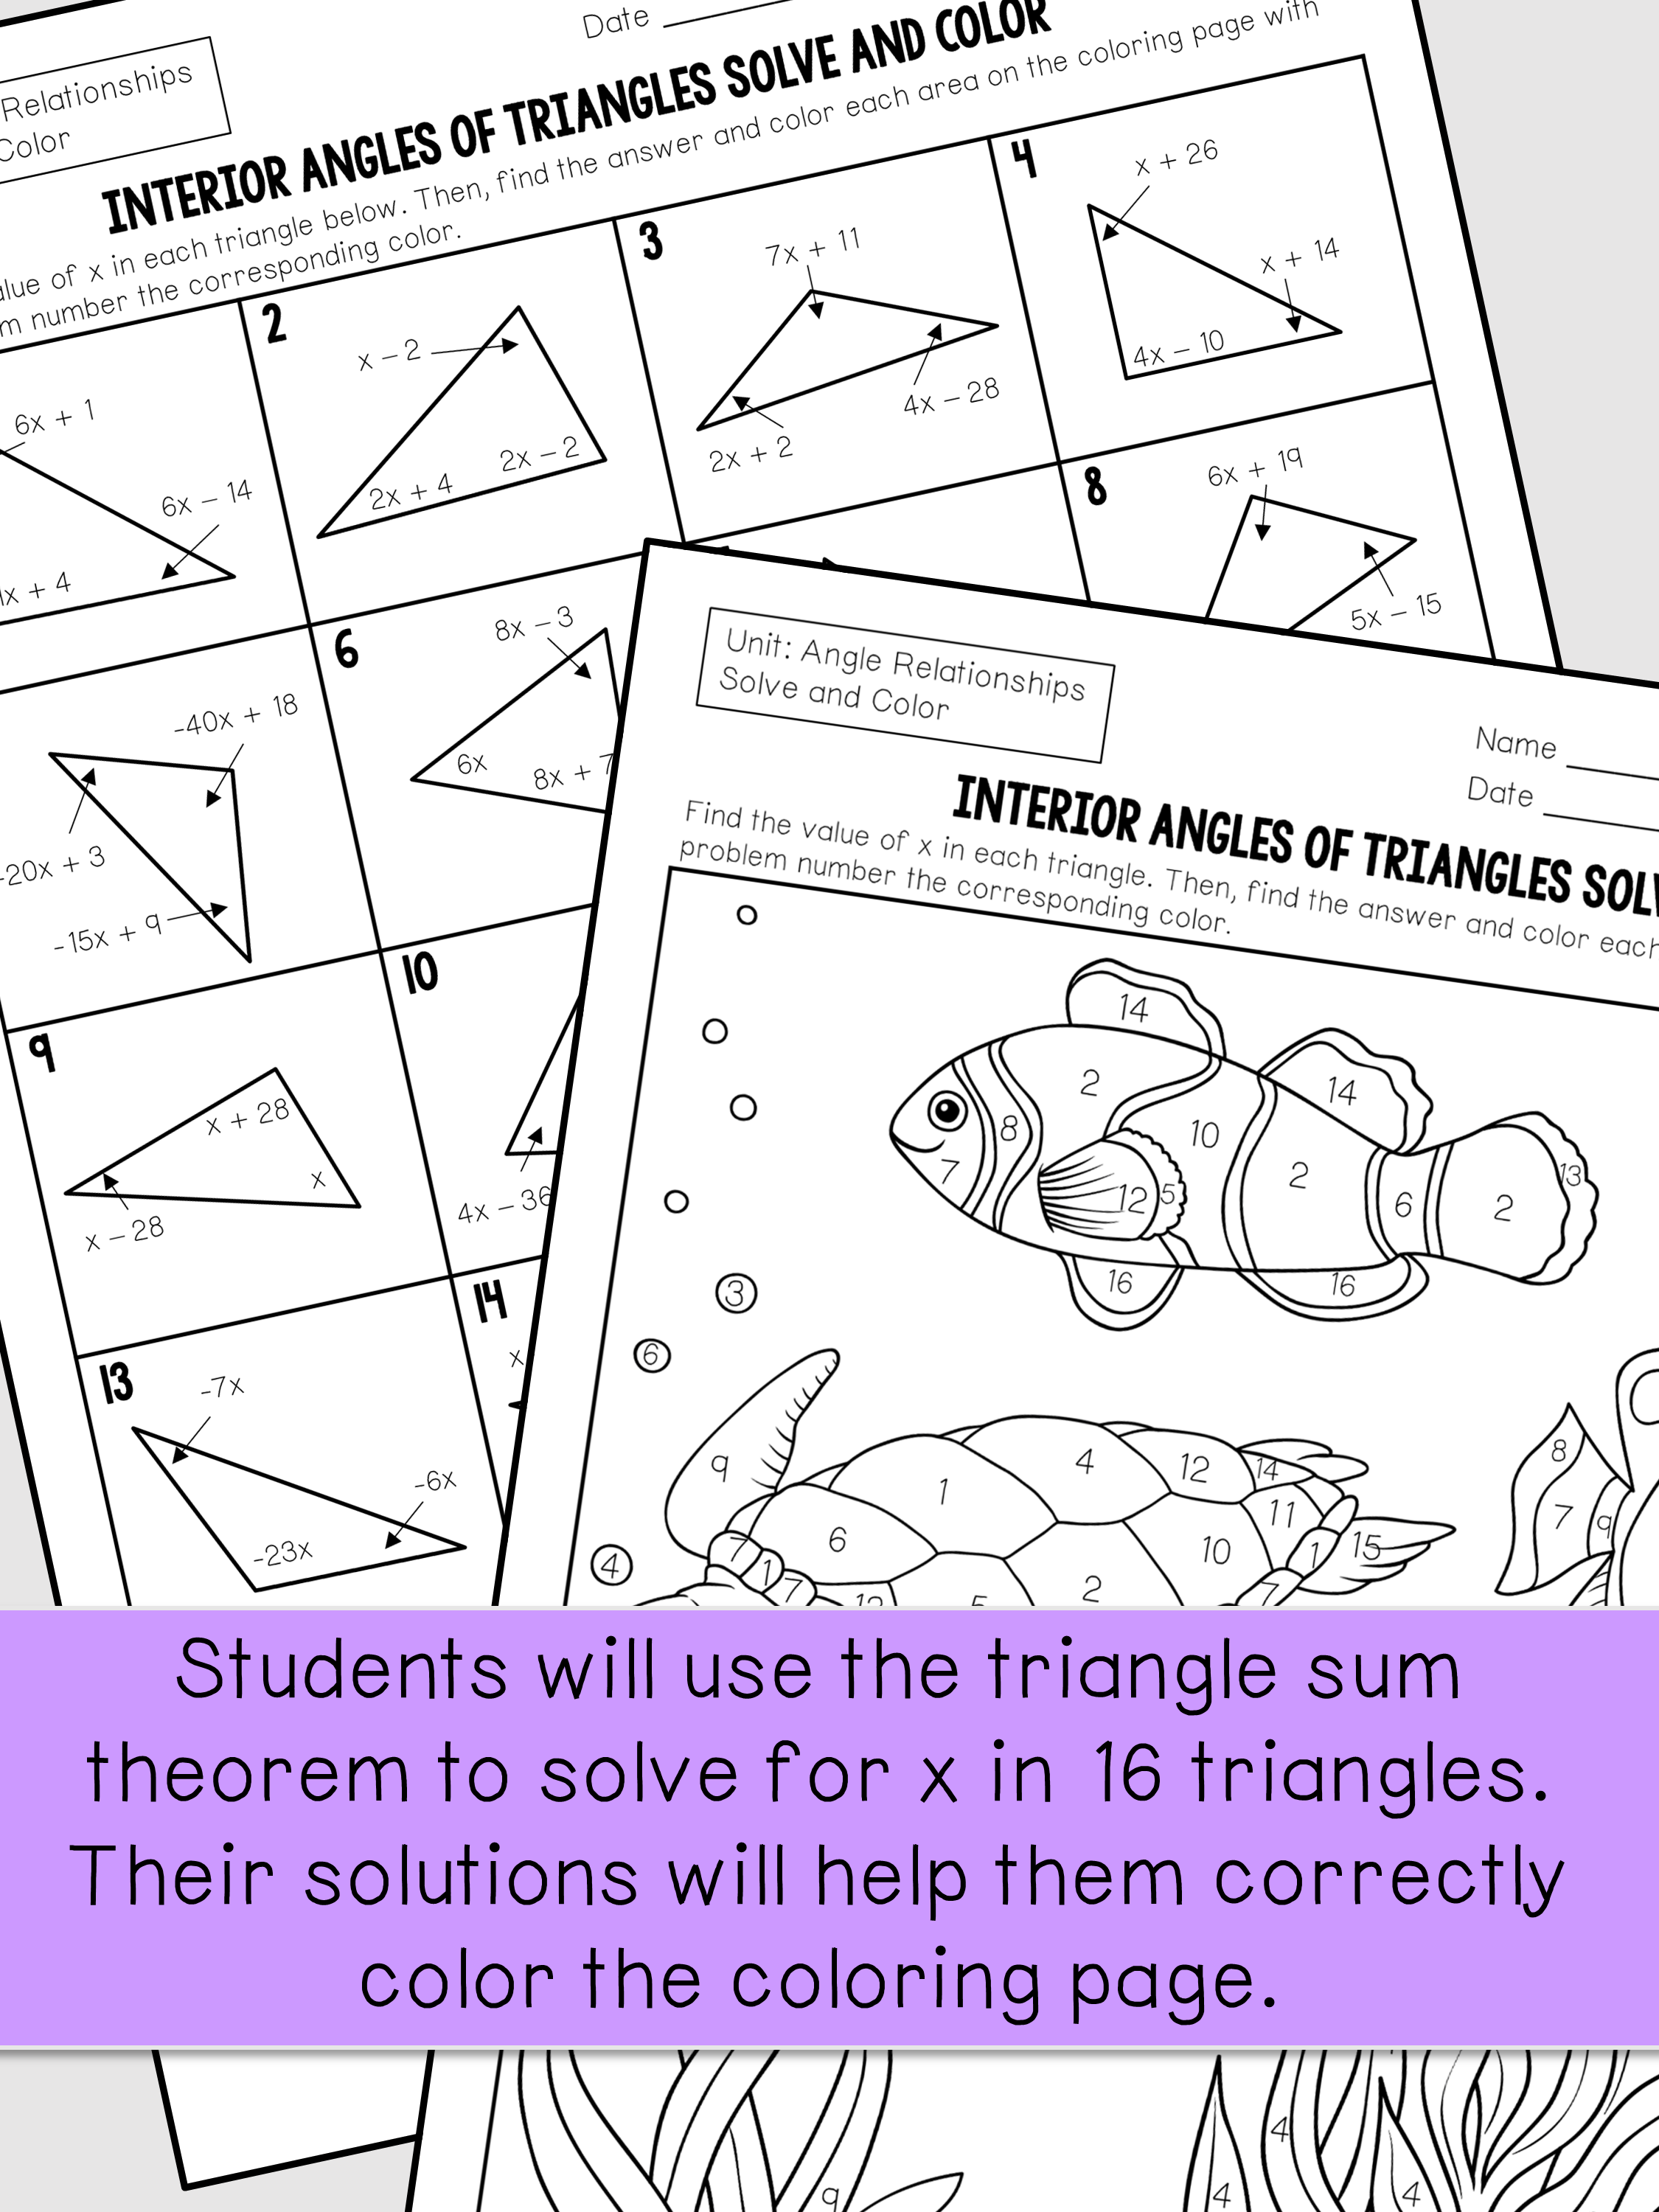 Interior Angles of Triangles 8th Grade Interior design